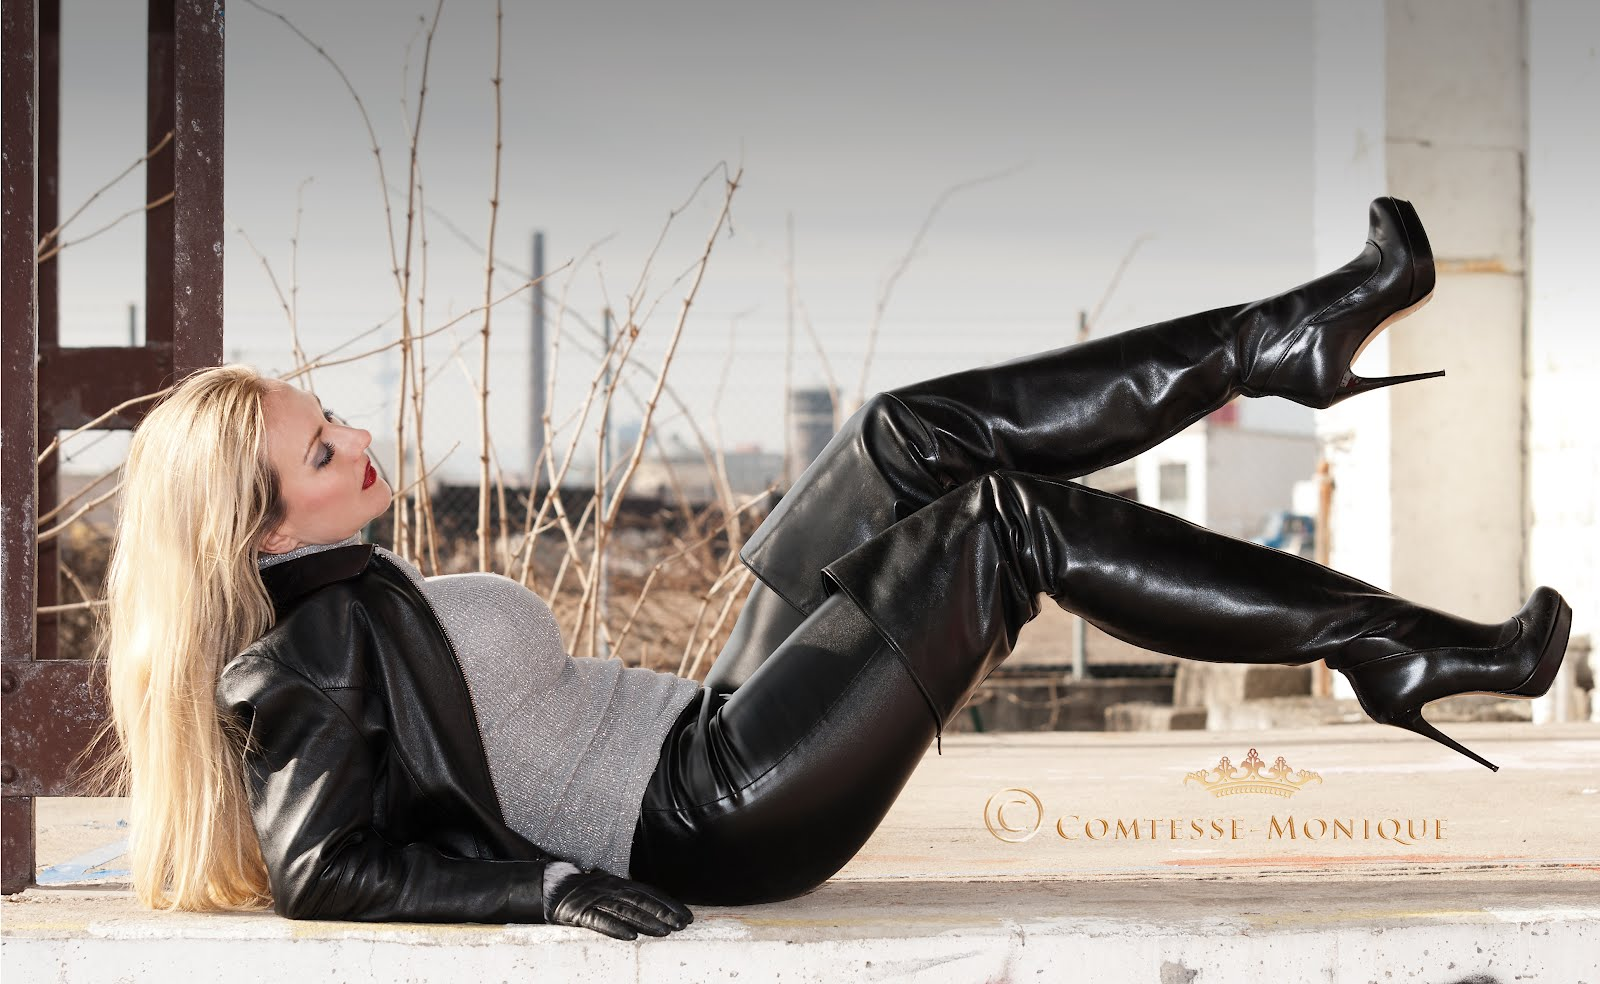 Older woman in tight leather pants